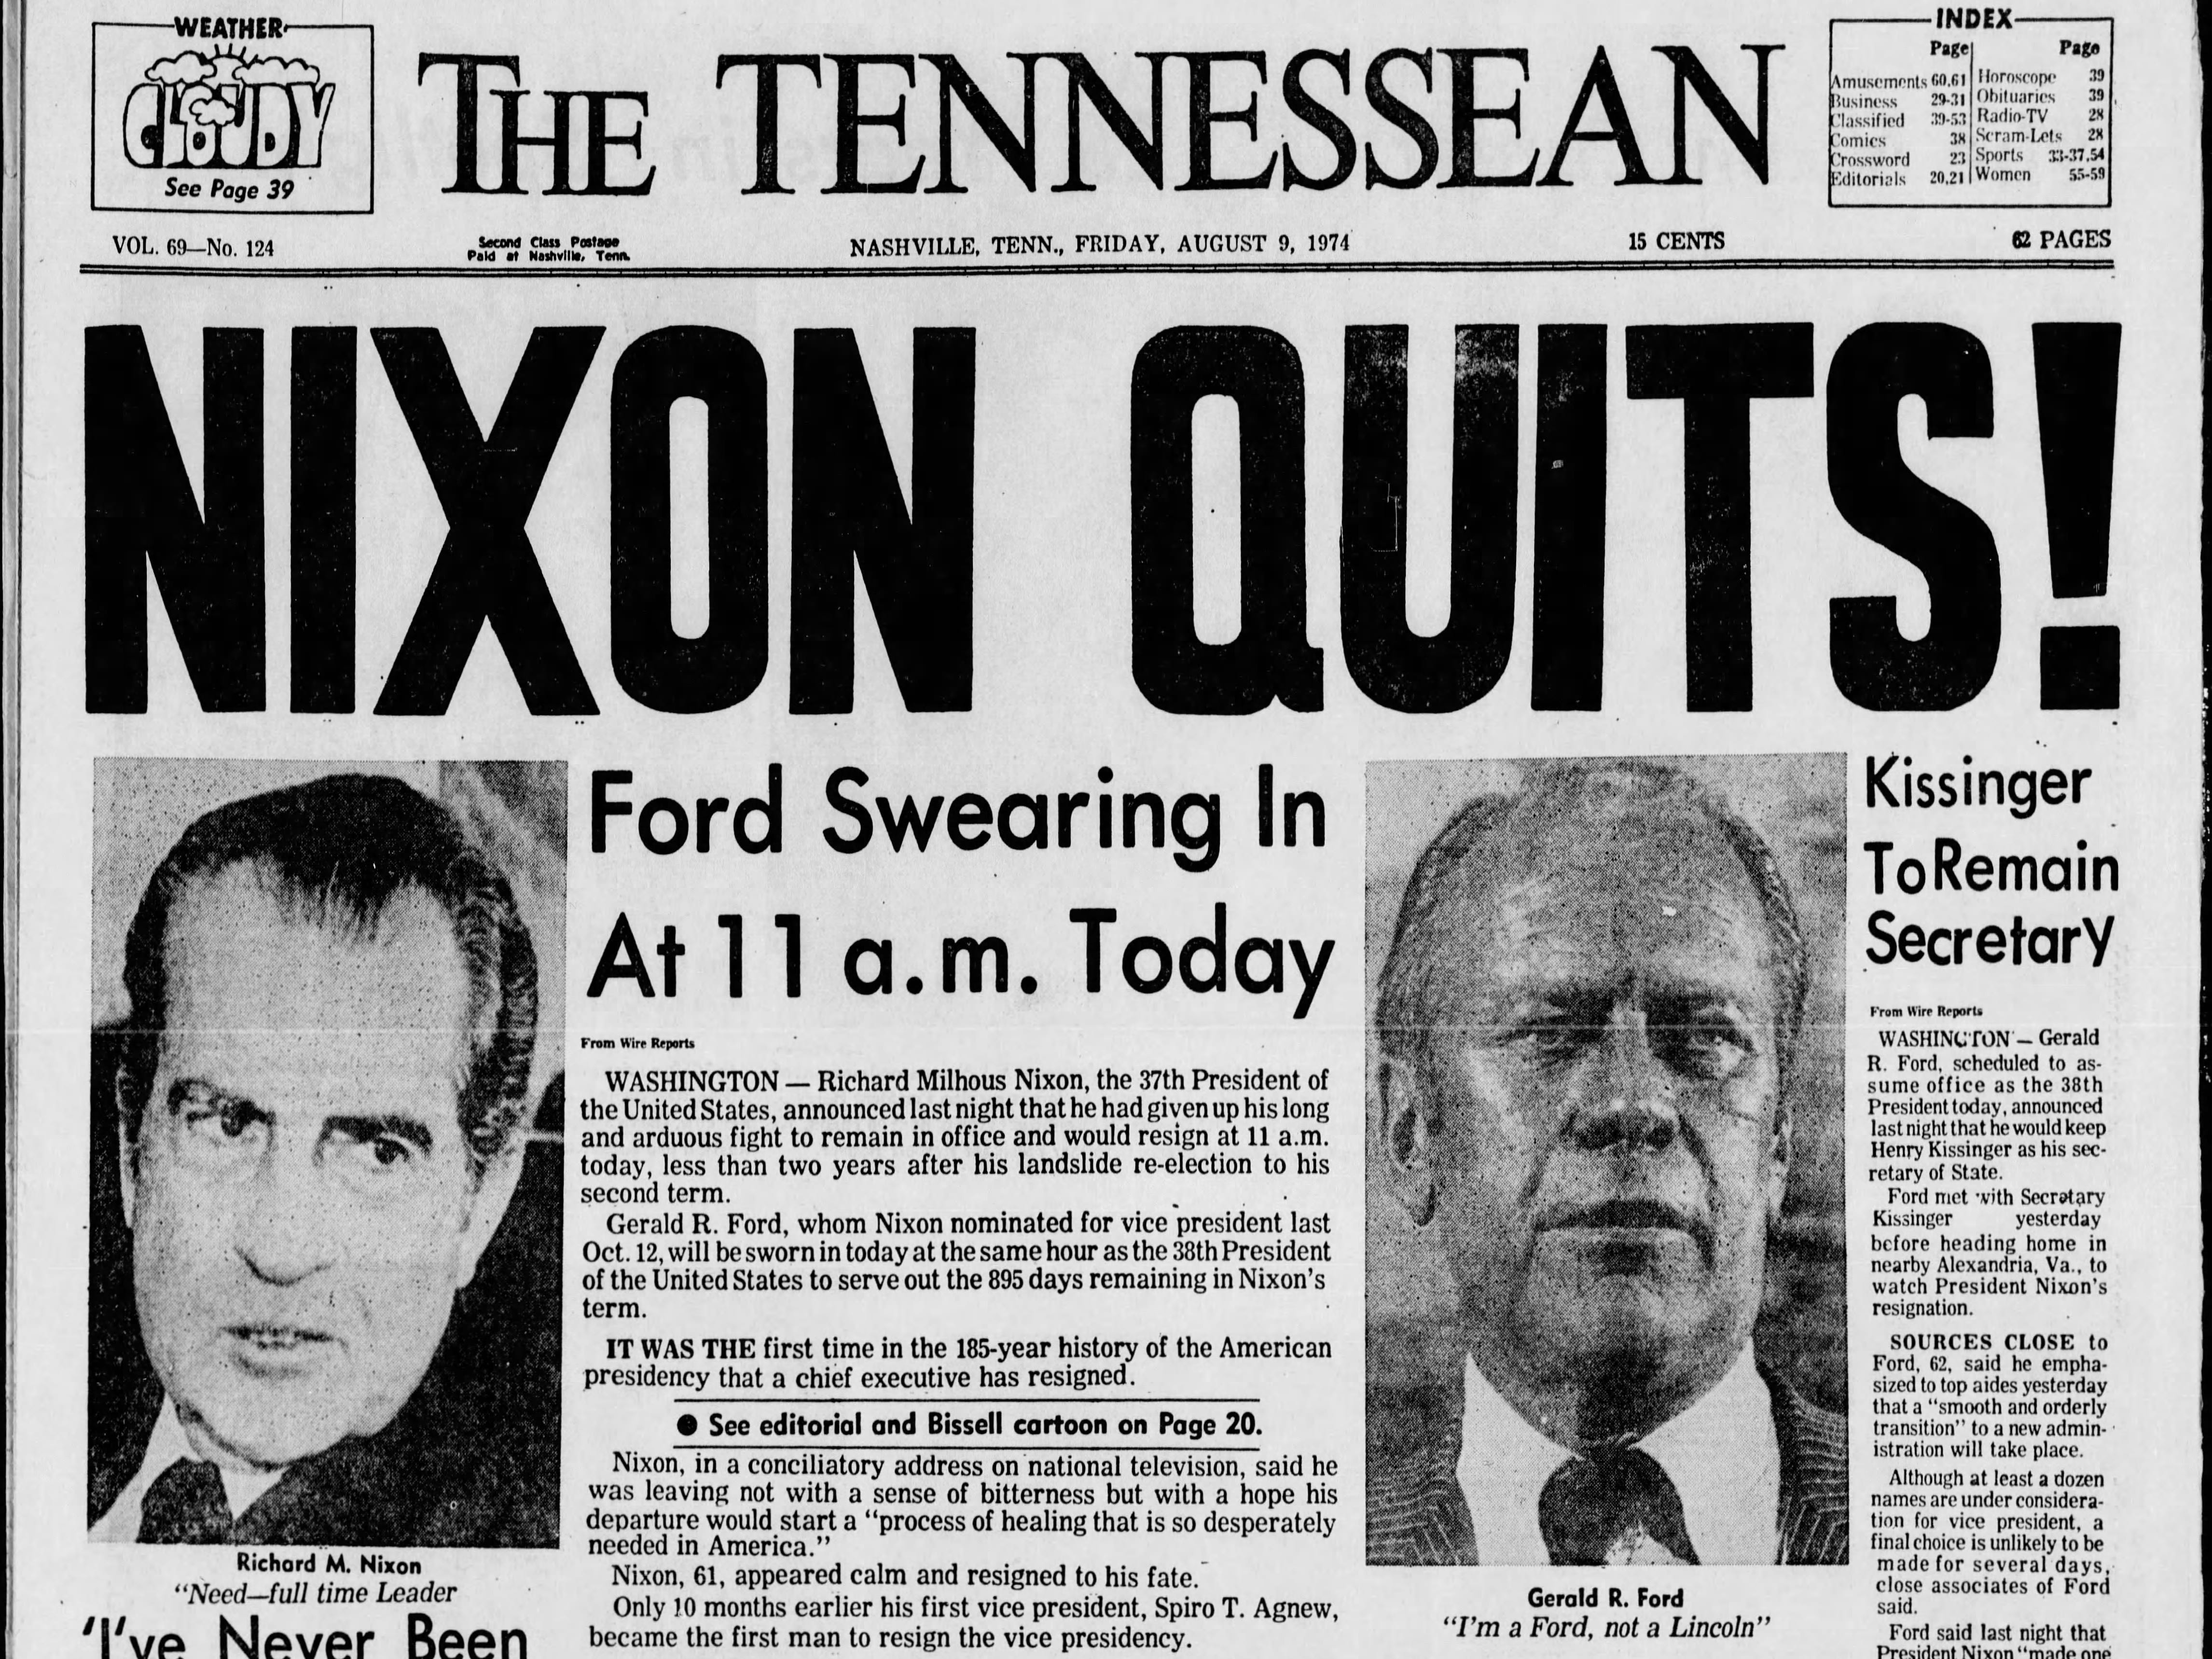 The front page of the Aug. 9, 1974 of The Tennessean for the coverage of the resignation of President Richard M. Nixon.